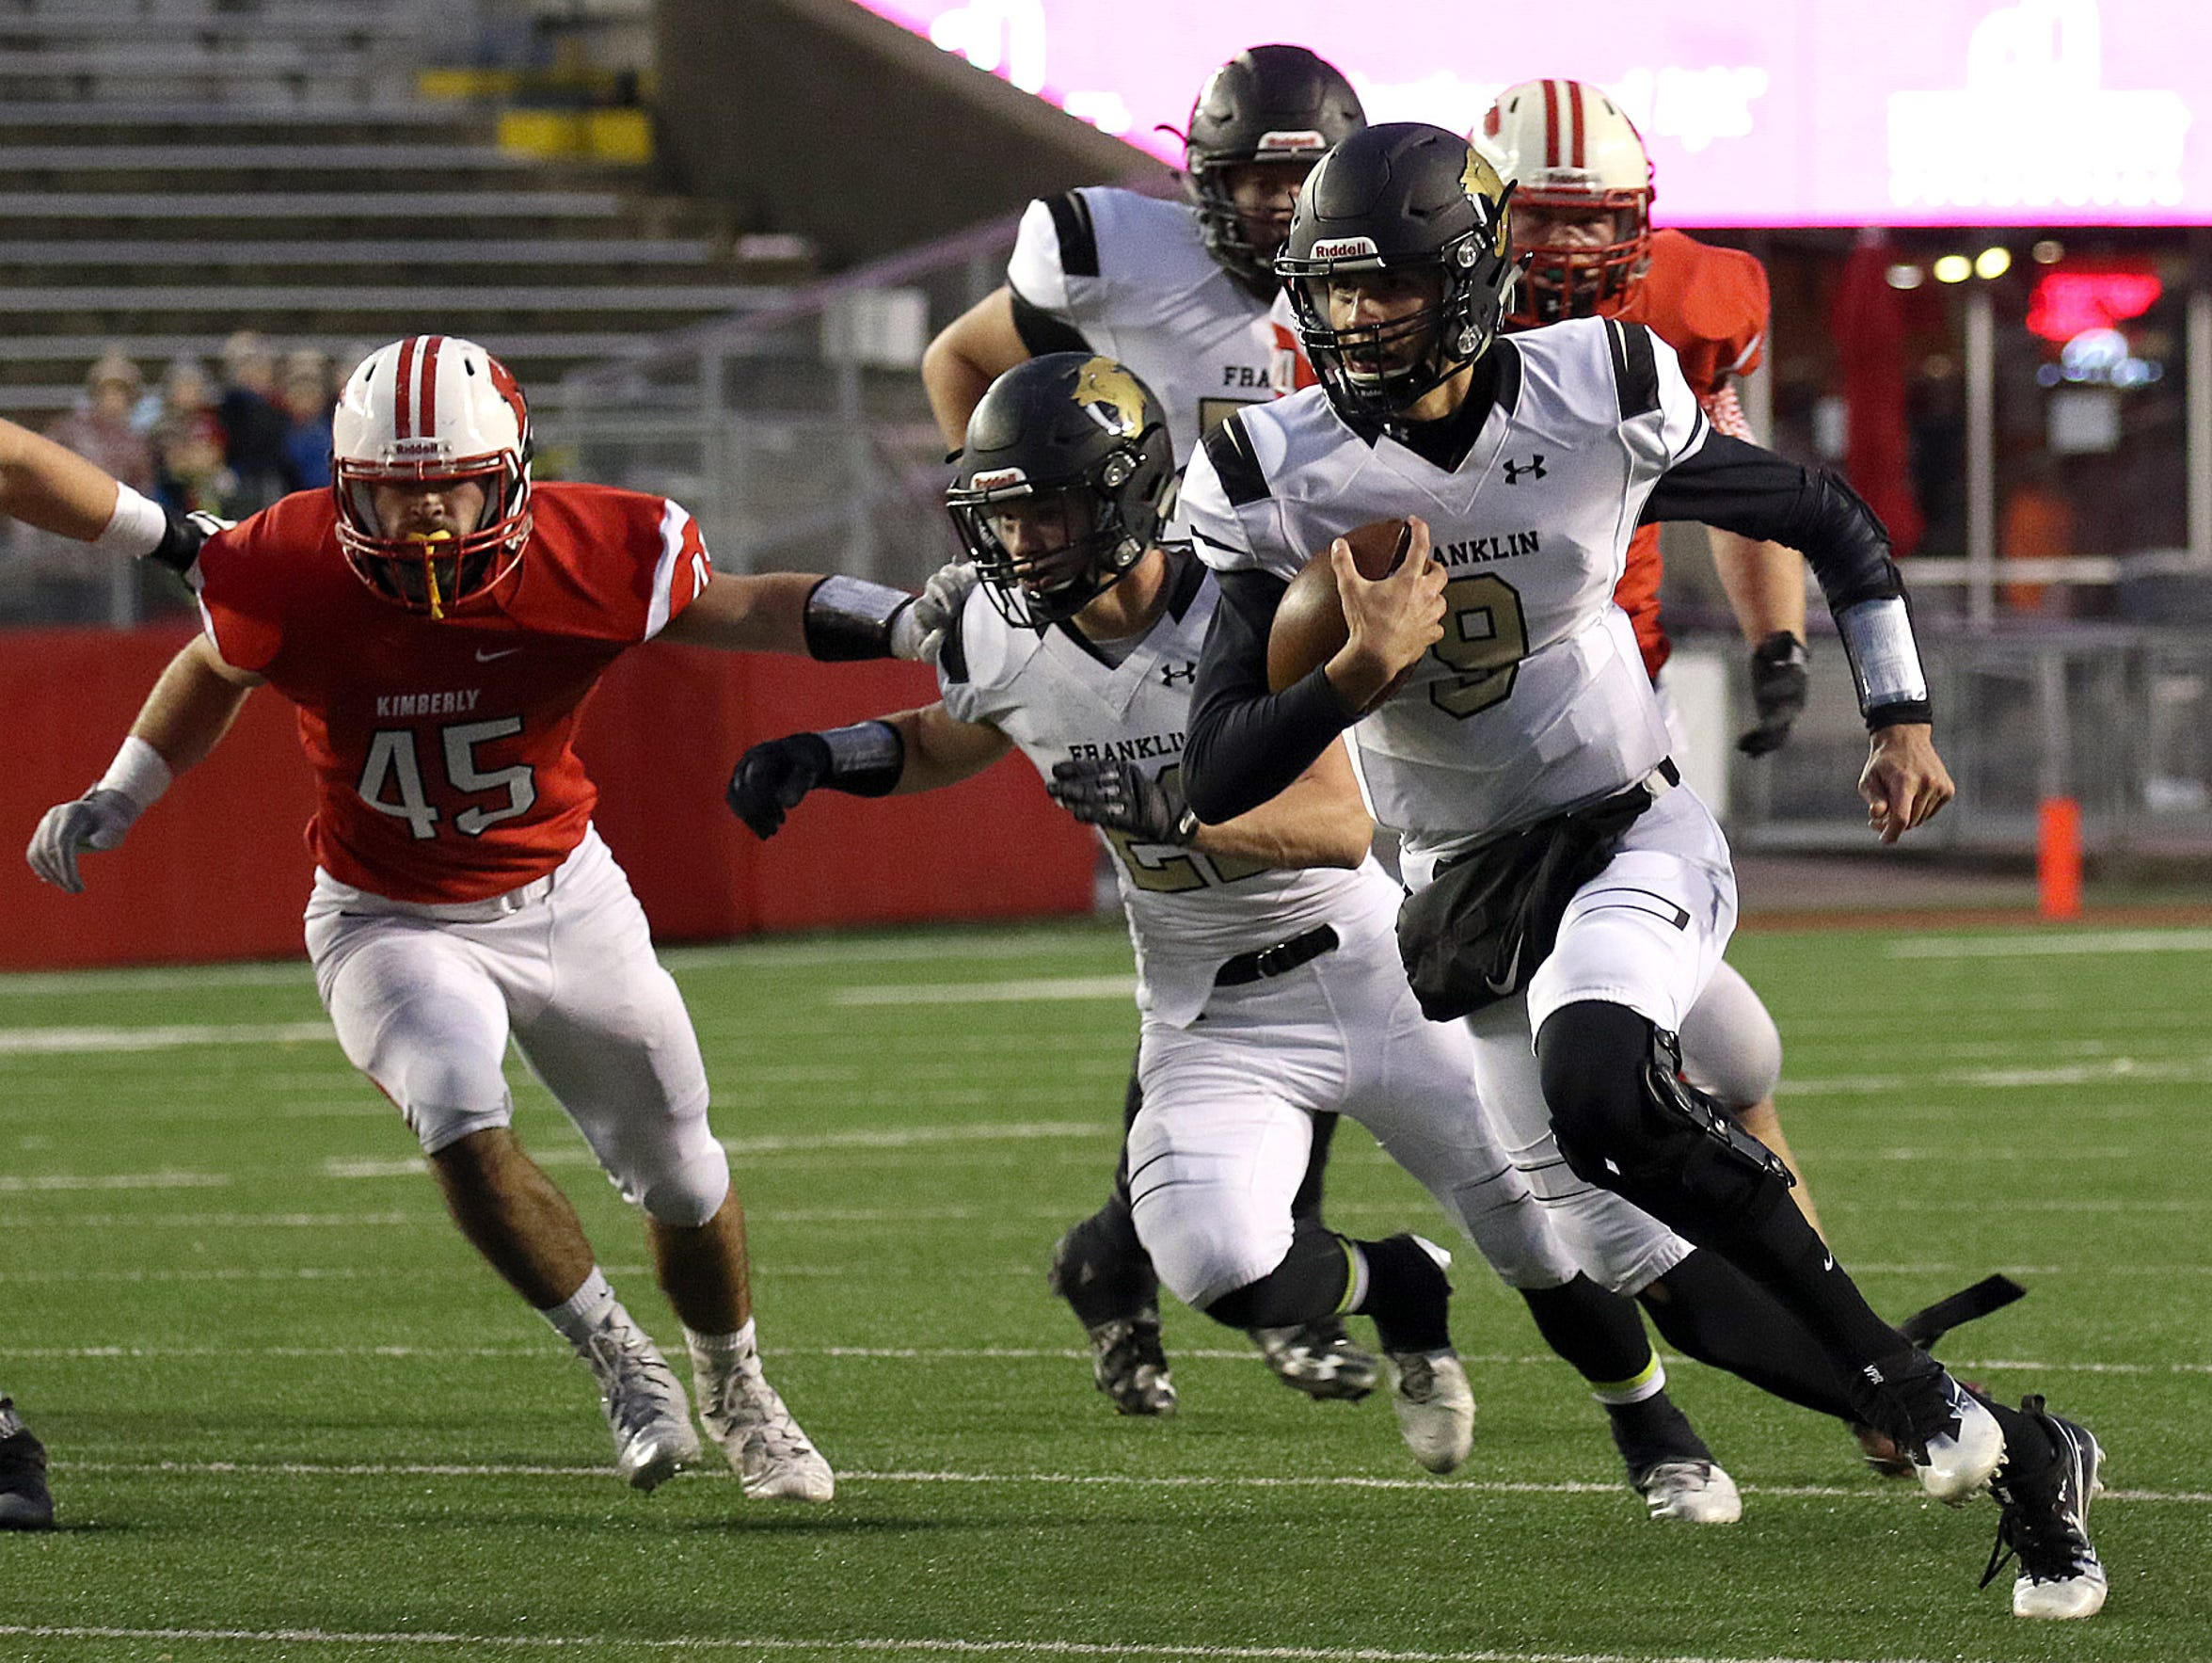 Franklin QB Max Alba rushes the ball during the state